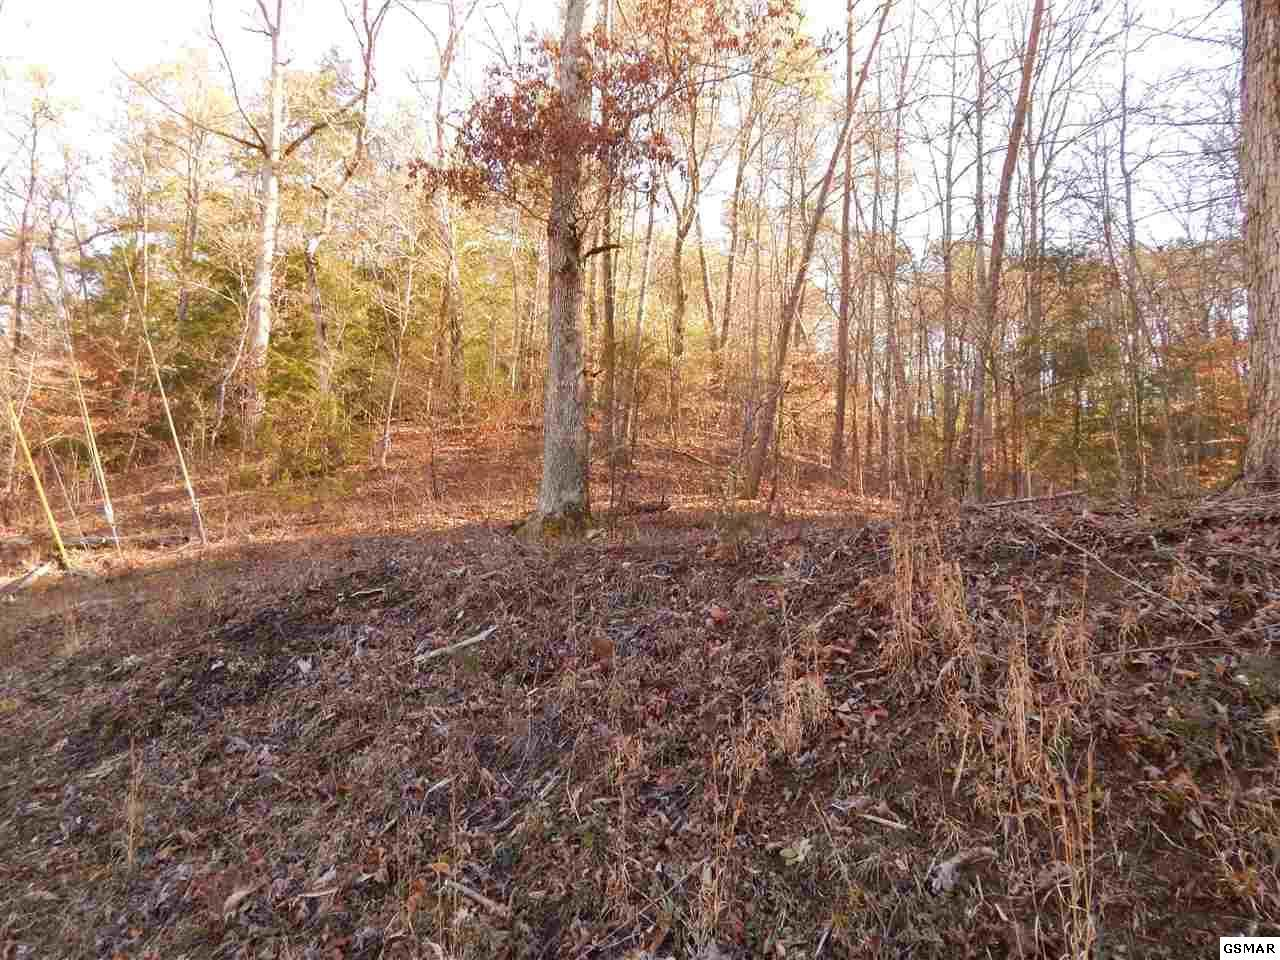 https://bt-photos.global.ssl.fastly.net/gsmar/orig_boomver_1_217208-2.jpg